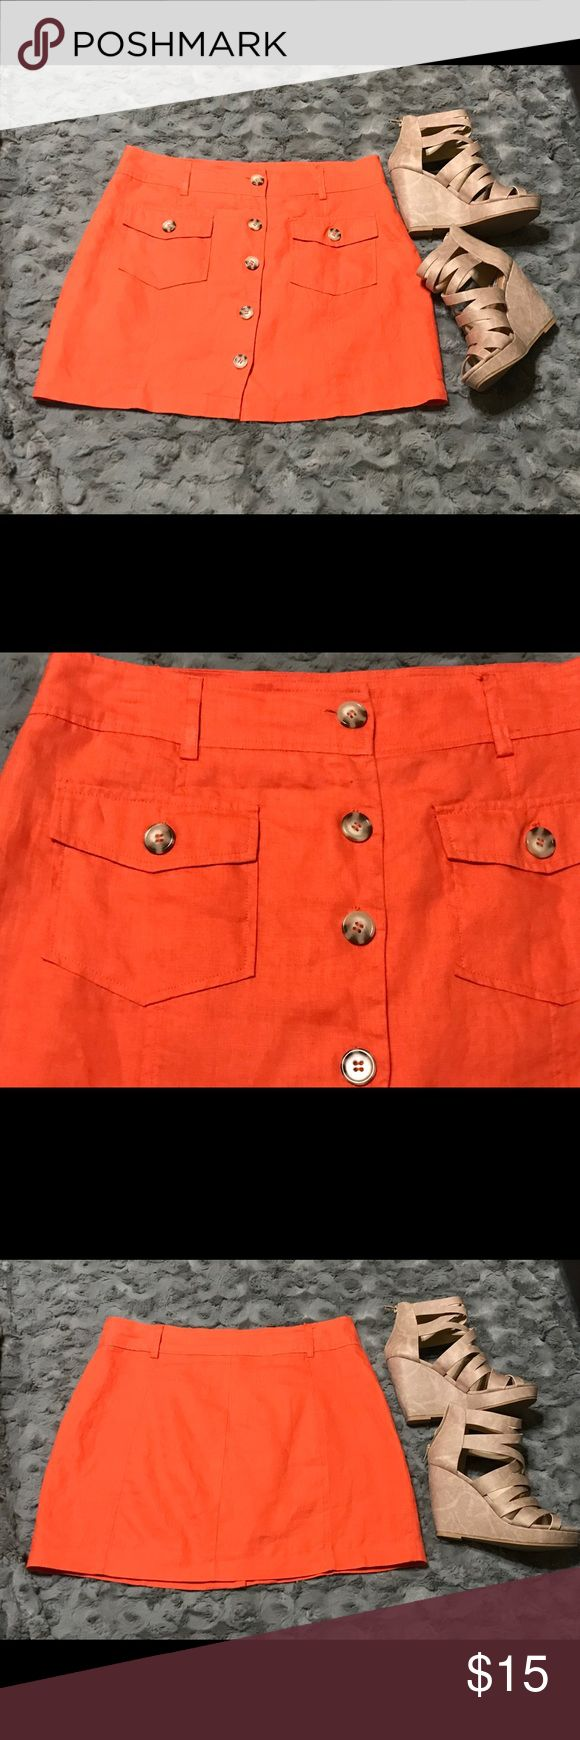 """Love Tree linen mini skirt size large Super cute orange linen A-line above the knee skirt by Love Tree. Size: Large Fully lined, center front button closure with two front button pocket detailing which are functional. Shell is 100% Linen.    Lining is 100% Acetate  Waist measured one side is 16"""" x's 2= 32"""" Length measured center top to bottom = 16.5"""" Hand wash Like new preowned condition. Love Tree Skirts Mini"""